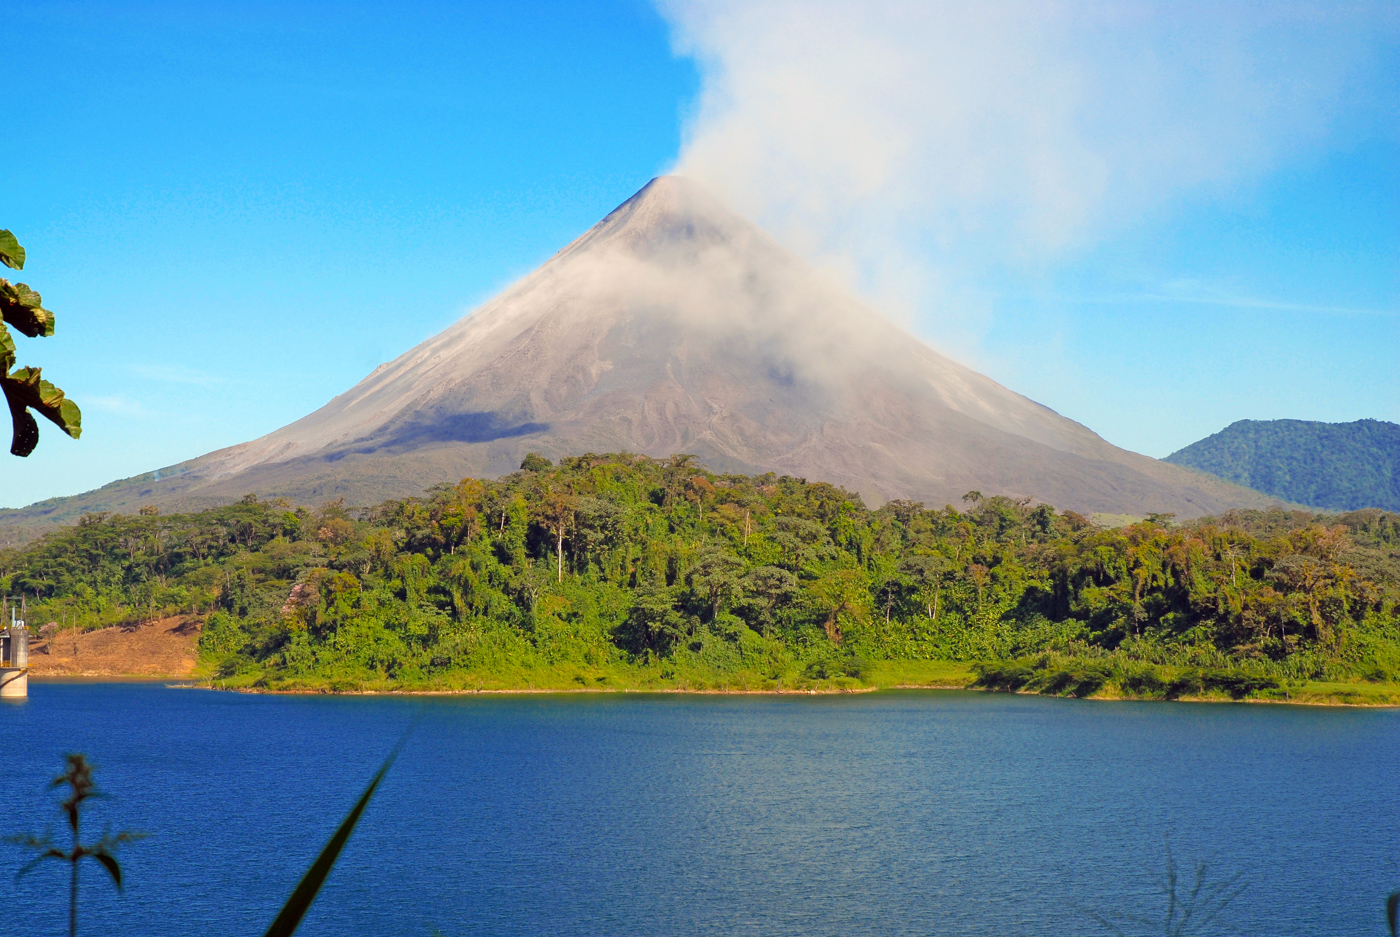 COS_ArenalVolcano_shutterstock_152512754_freewithcredit